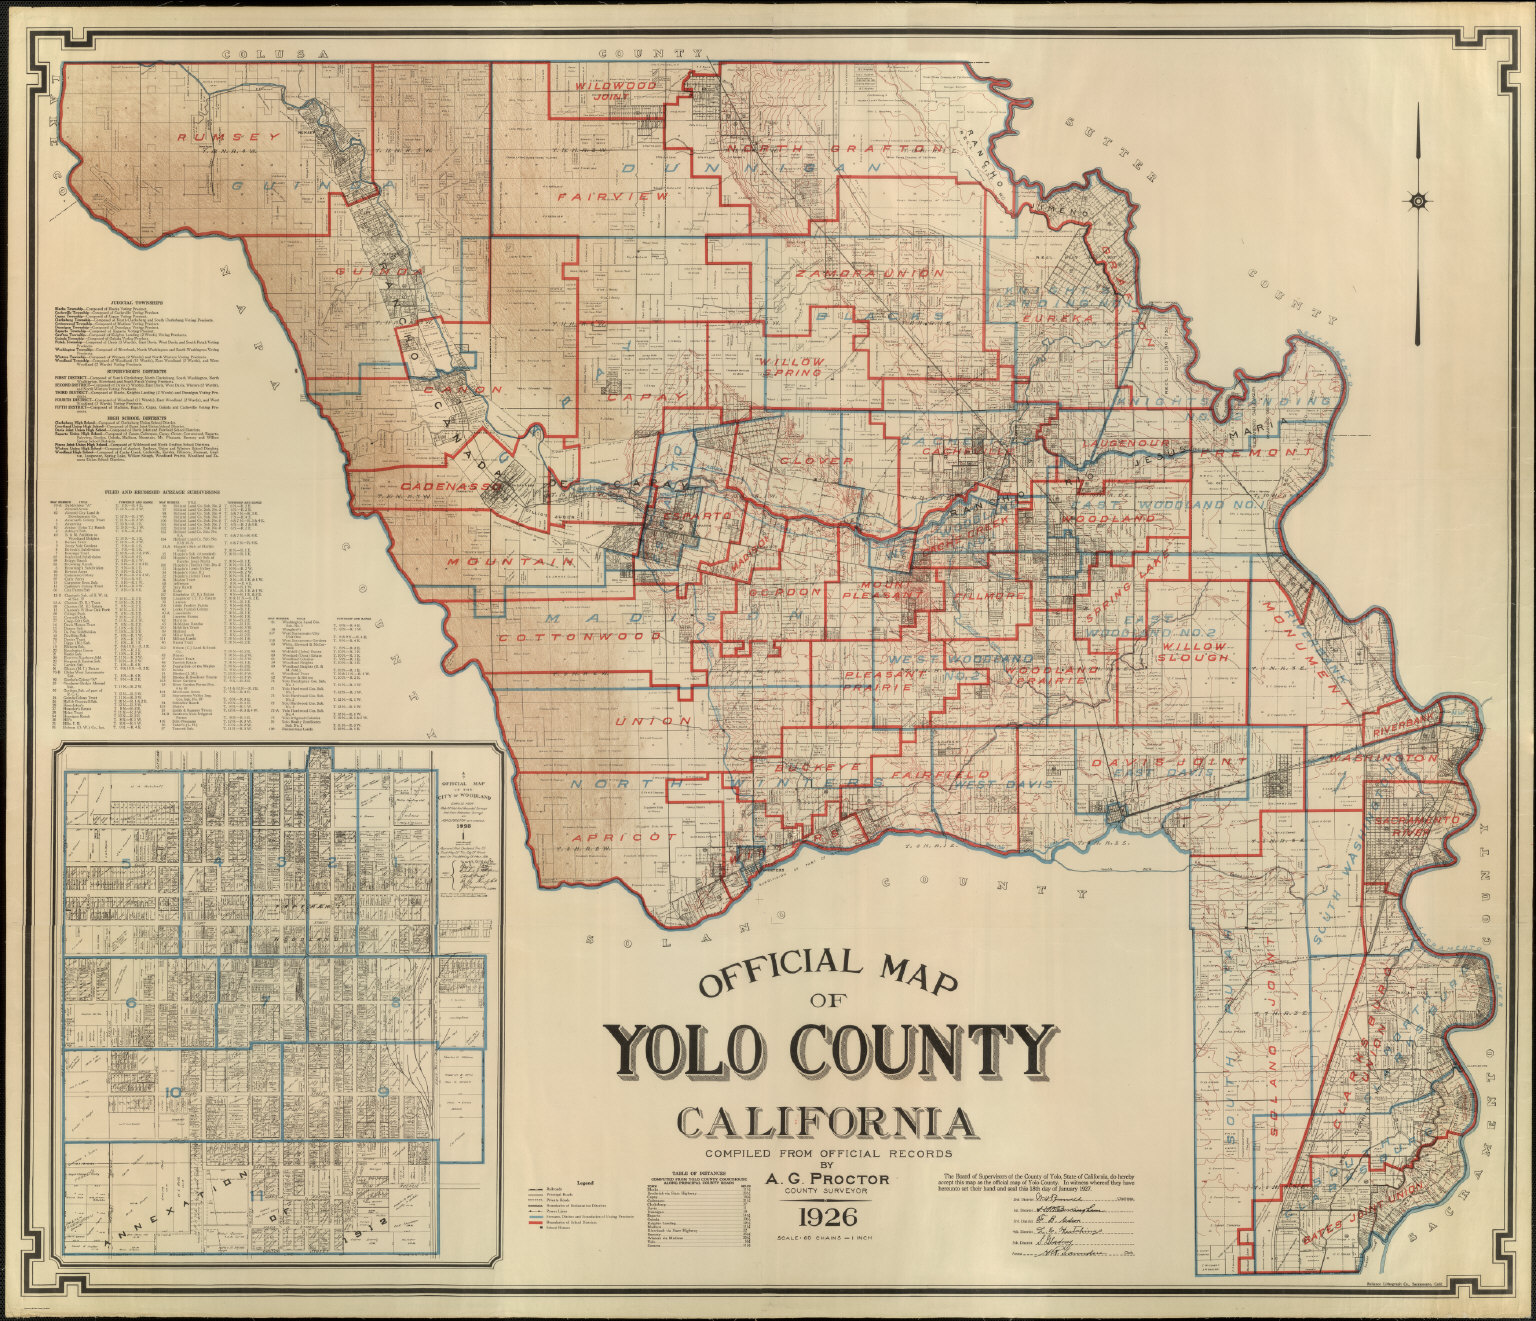 Official Map of Yolo County, California, 1926.   David Rumsey